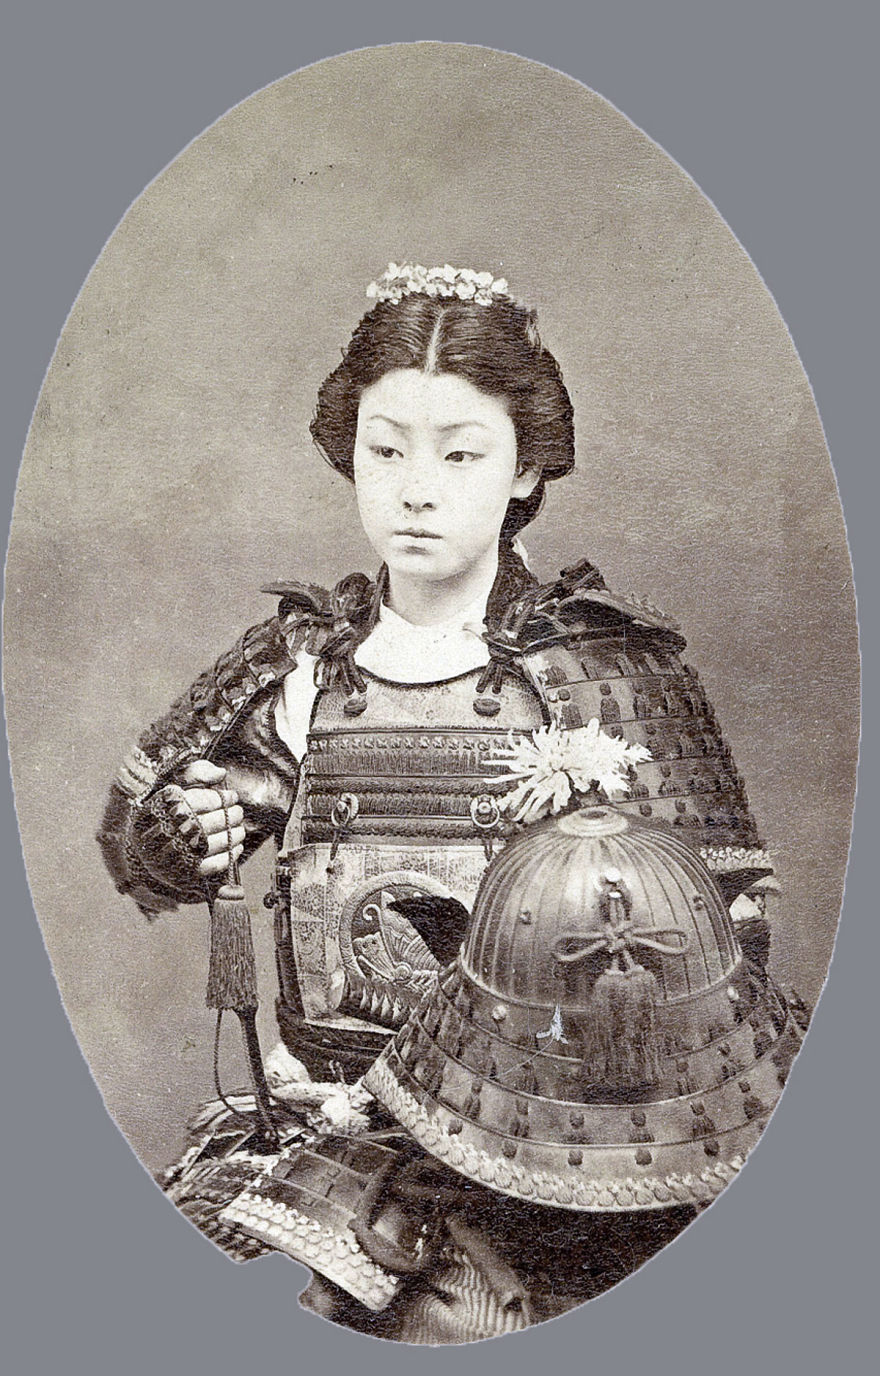 last-samurai-photography-japan-1800s-14-5715d10e3c0ae__880